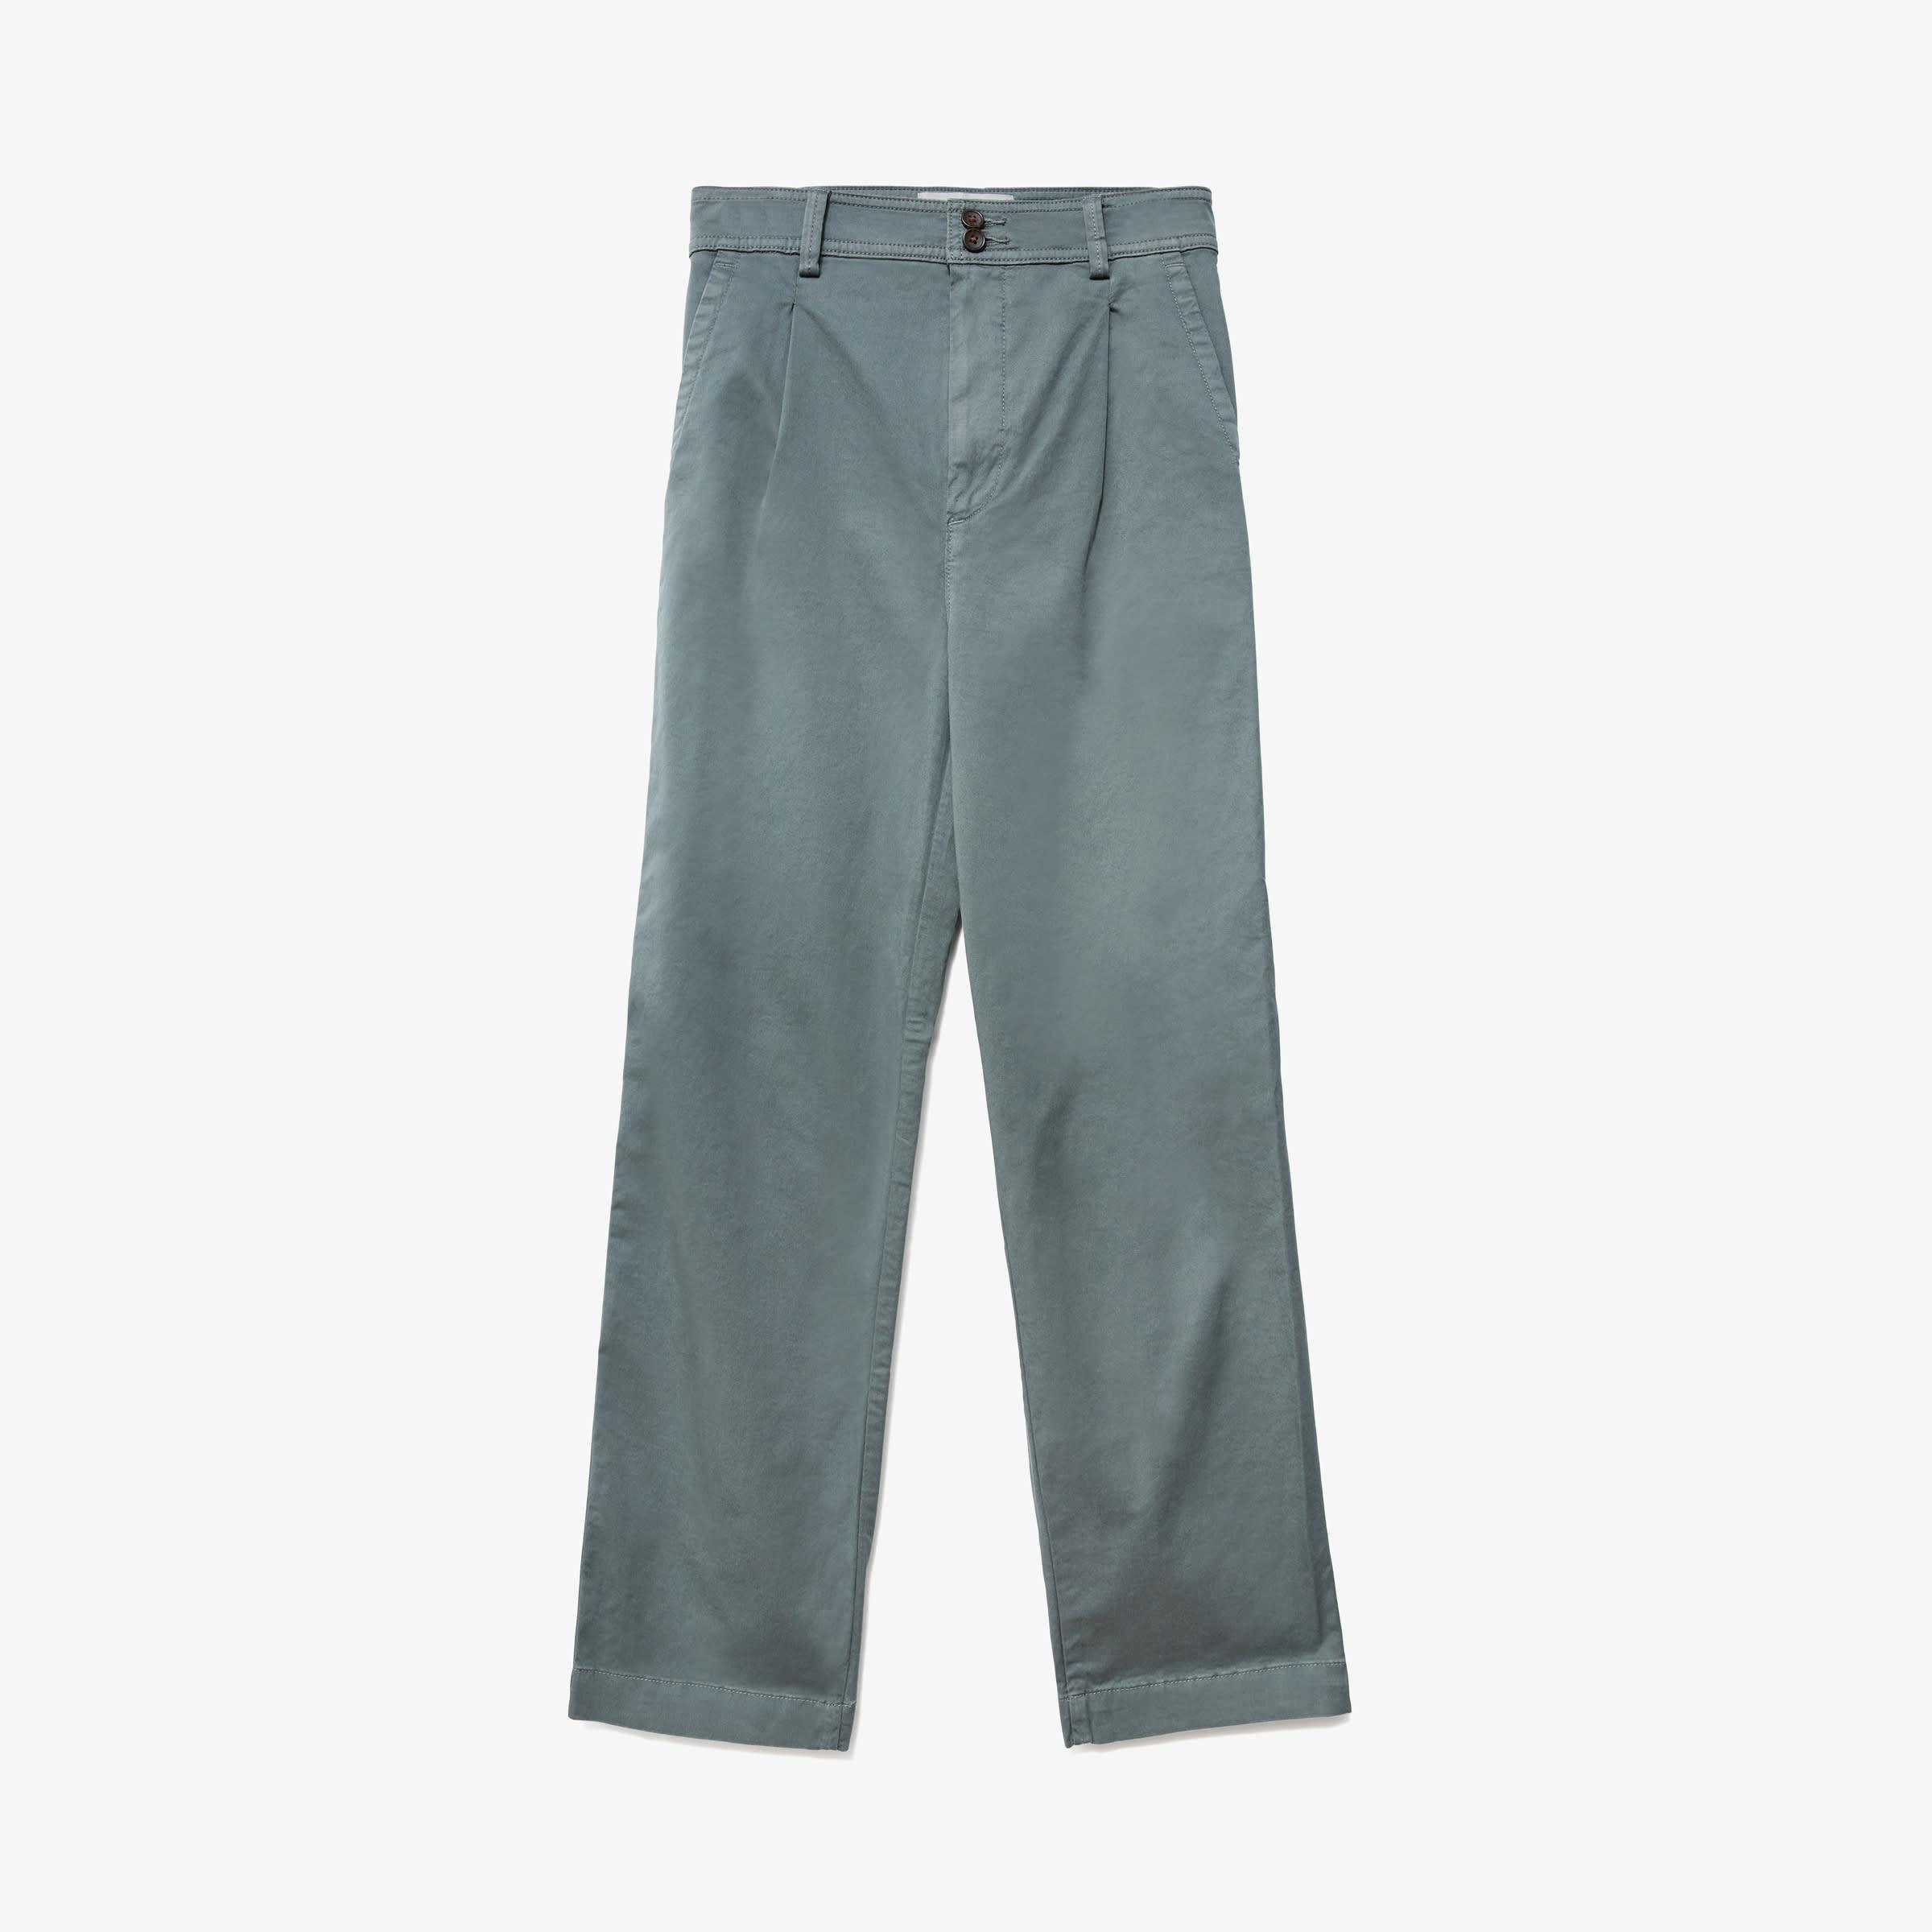 The Pleated Chino 3